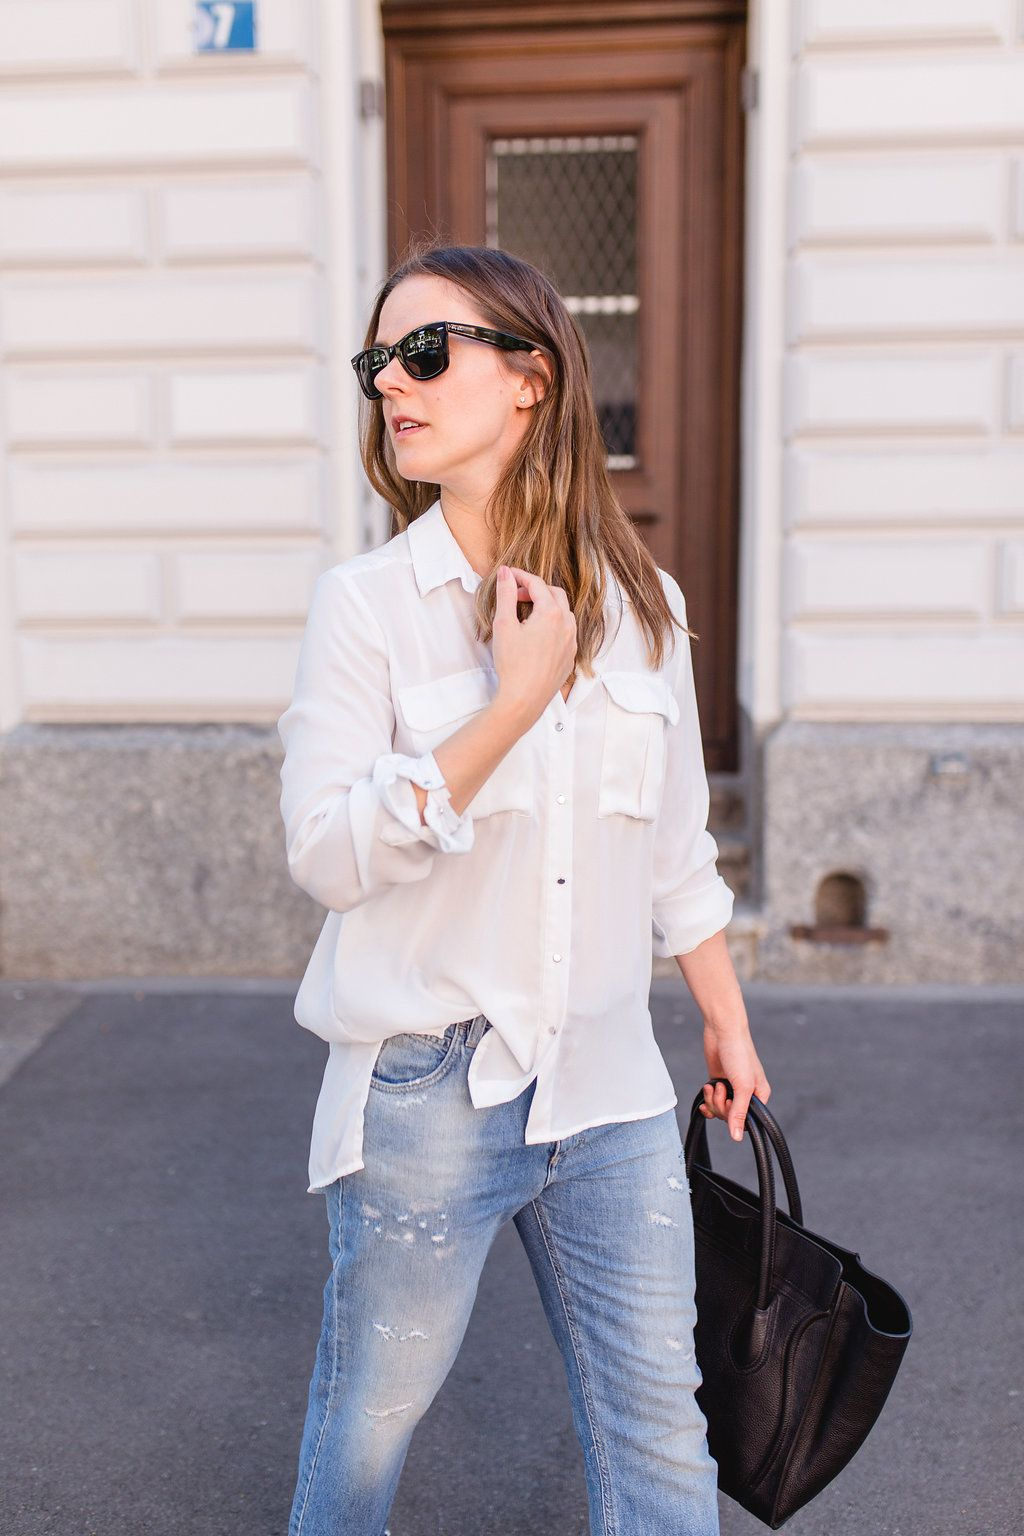 OUTFIT: Weisse Bluse und Jeans. #simpleandmore | Outfit